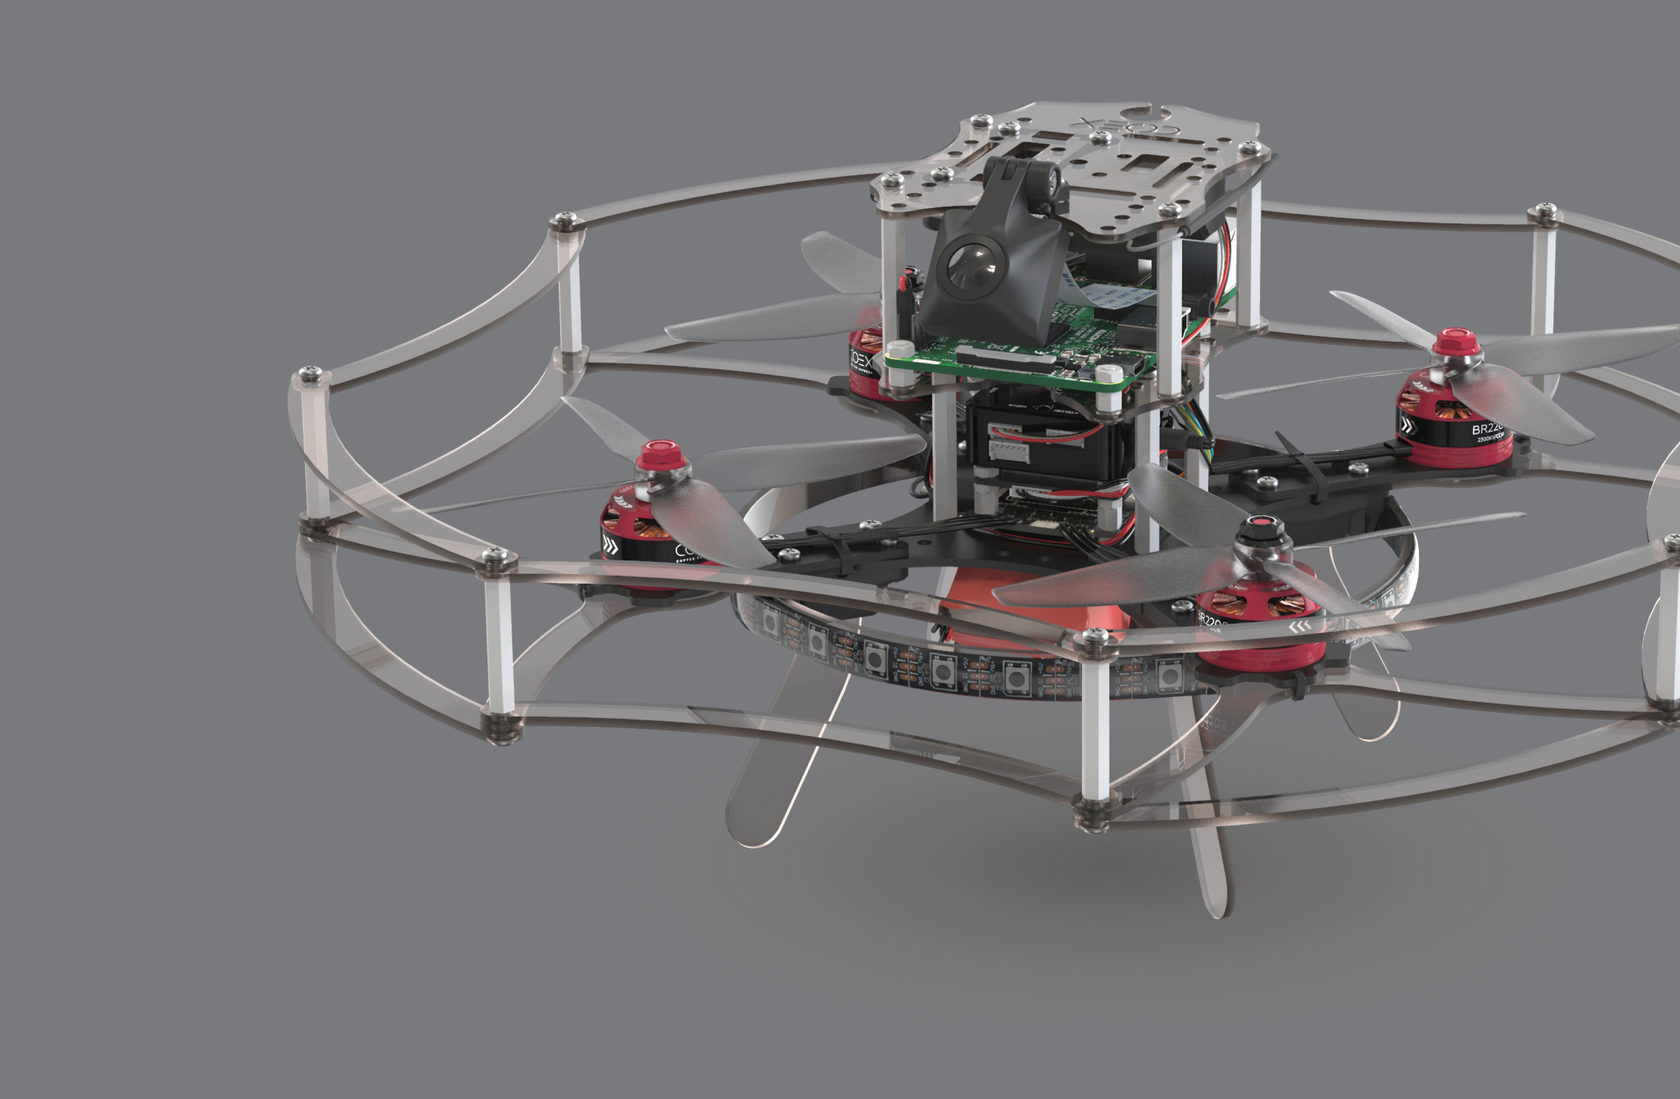 COEX Clever Drone — Programmable Quadcopter Kit